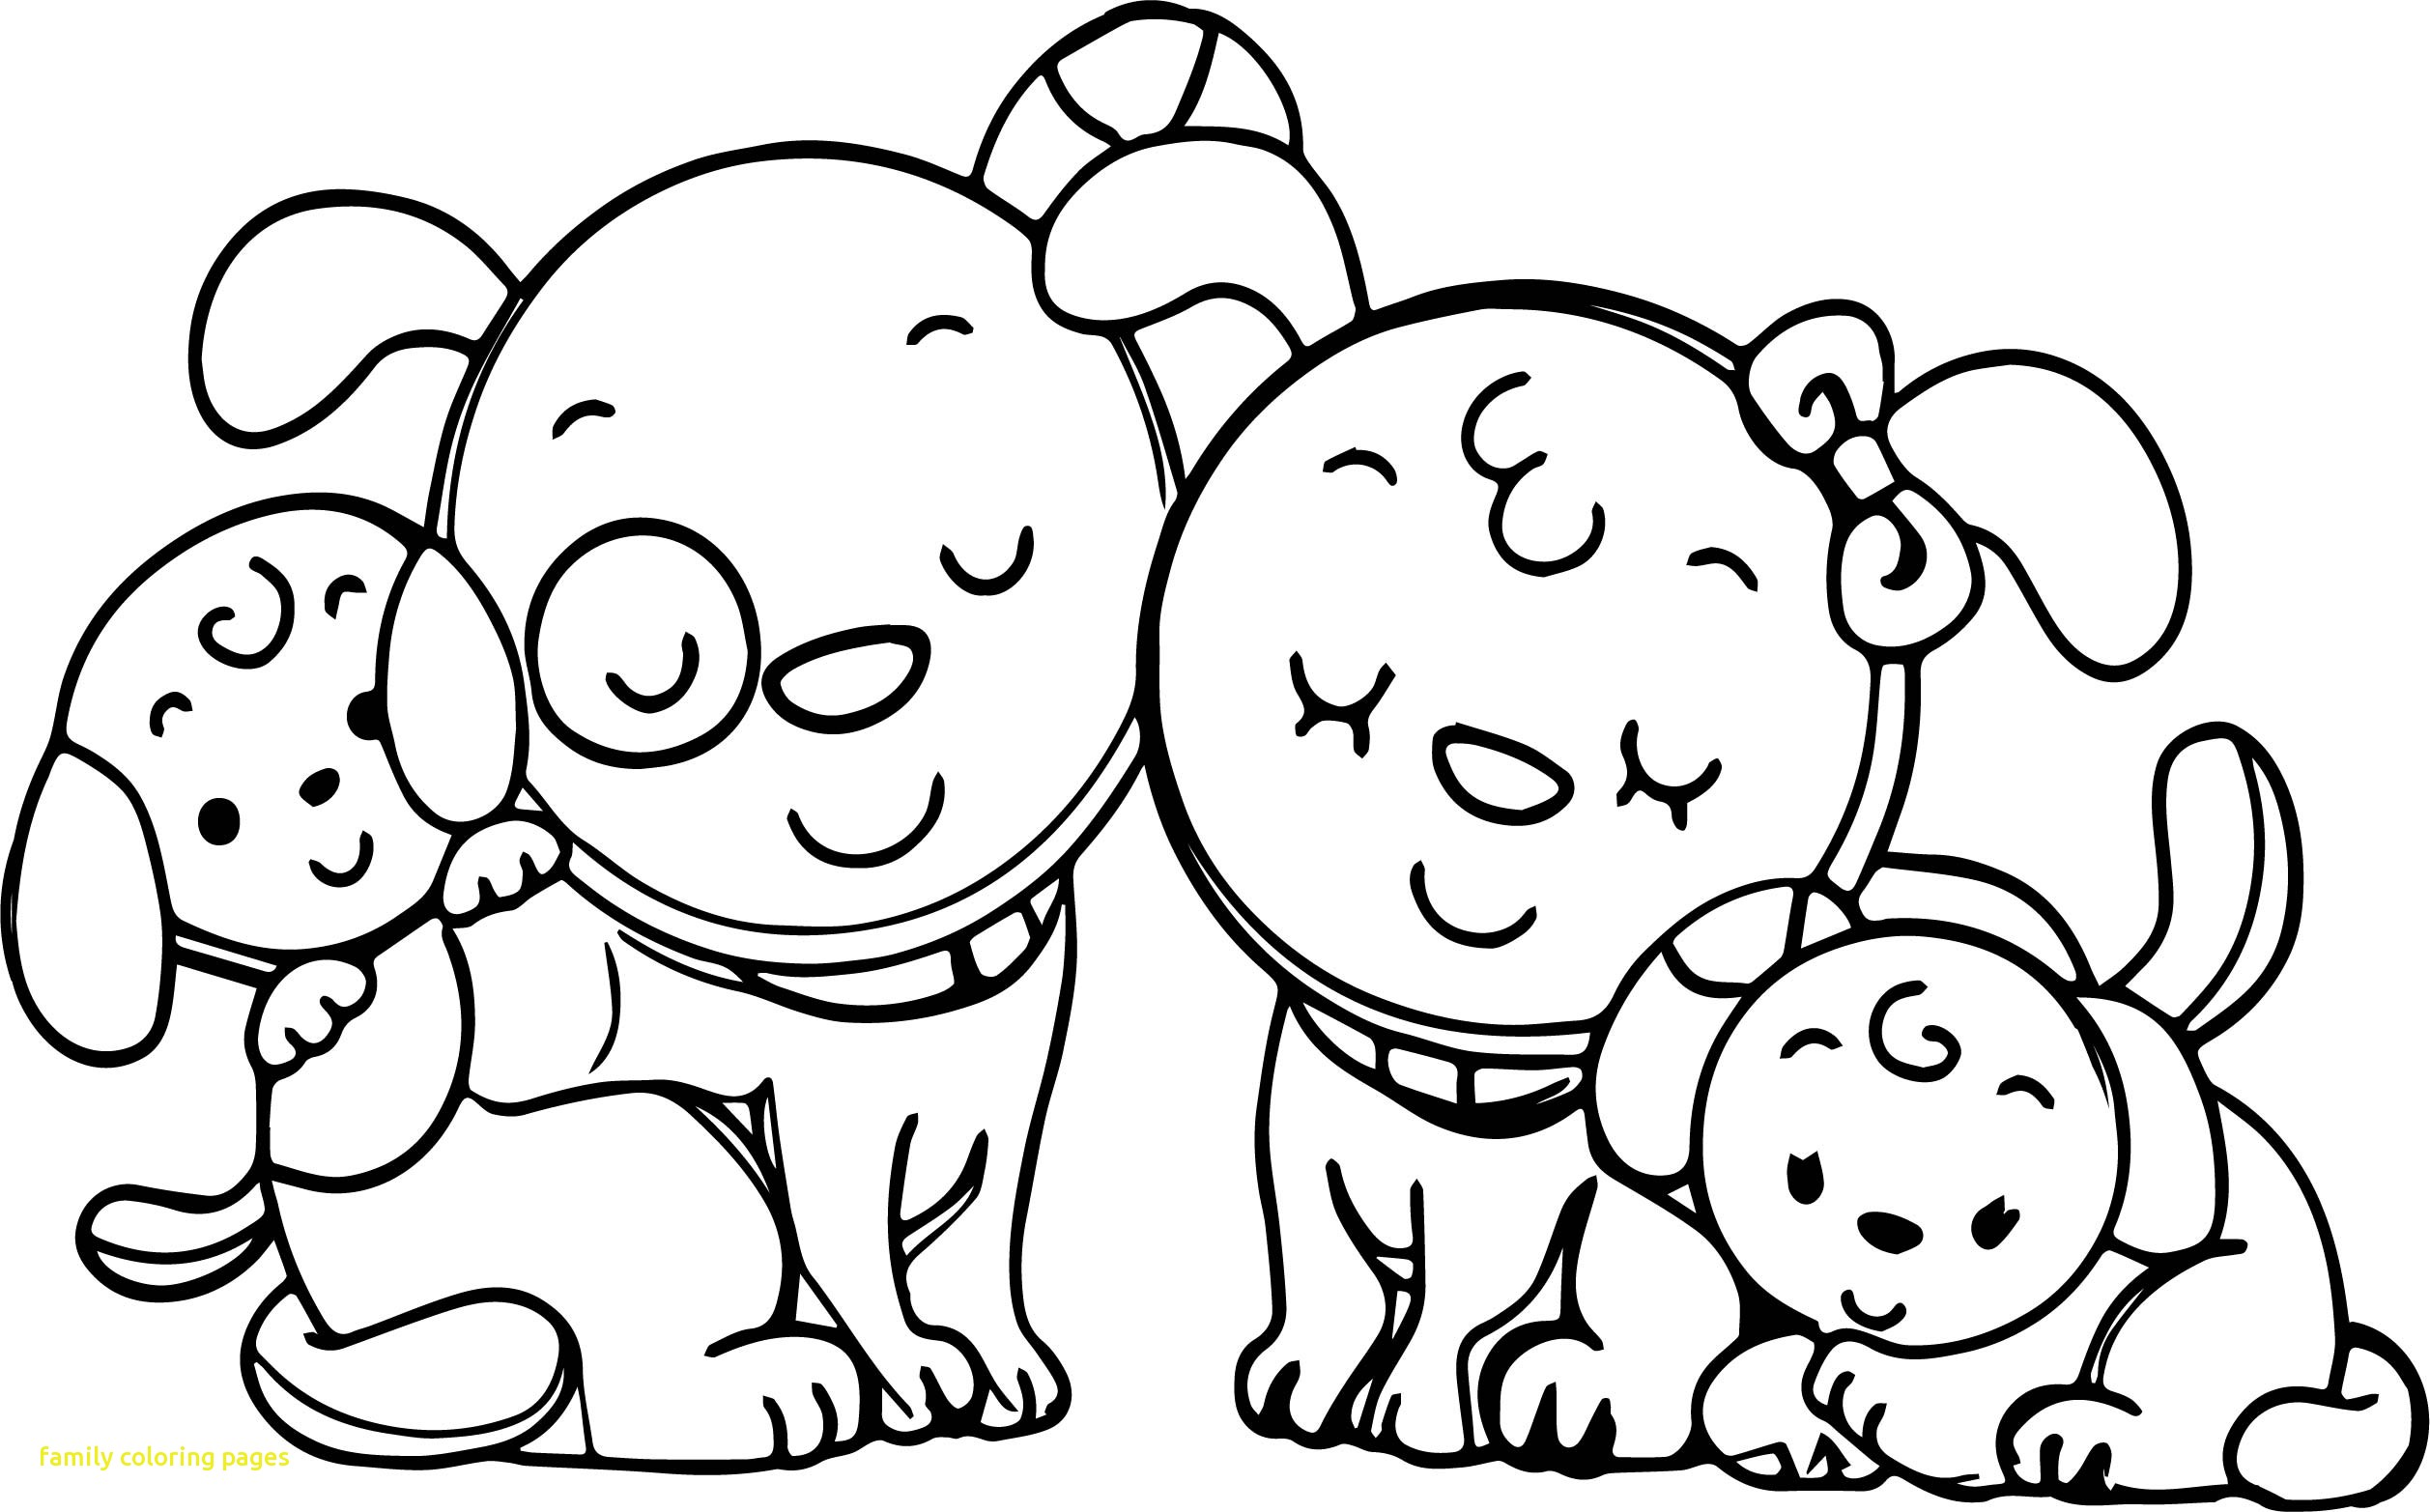 family coloring pages get this kids39 printable family coloring pages x4lk2 coloring pages family